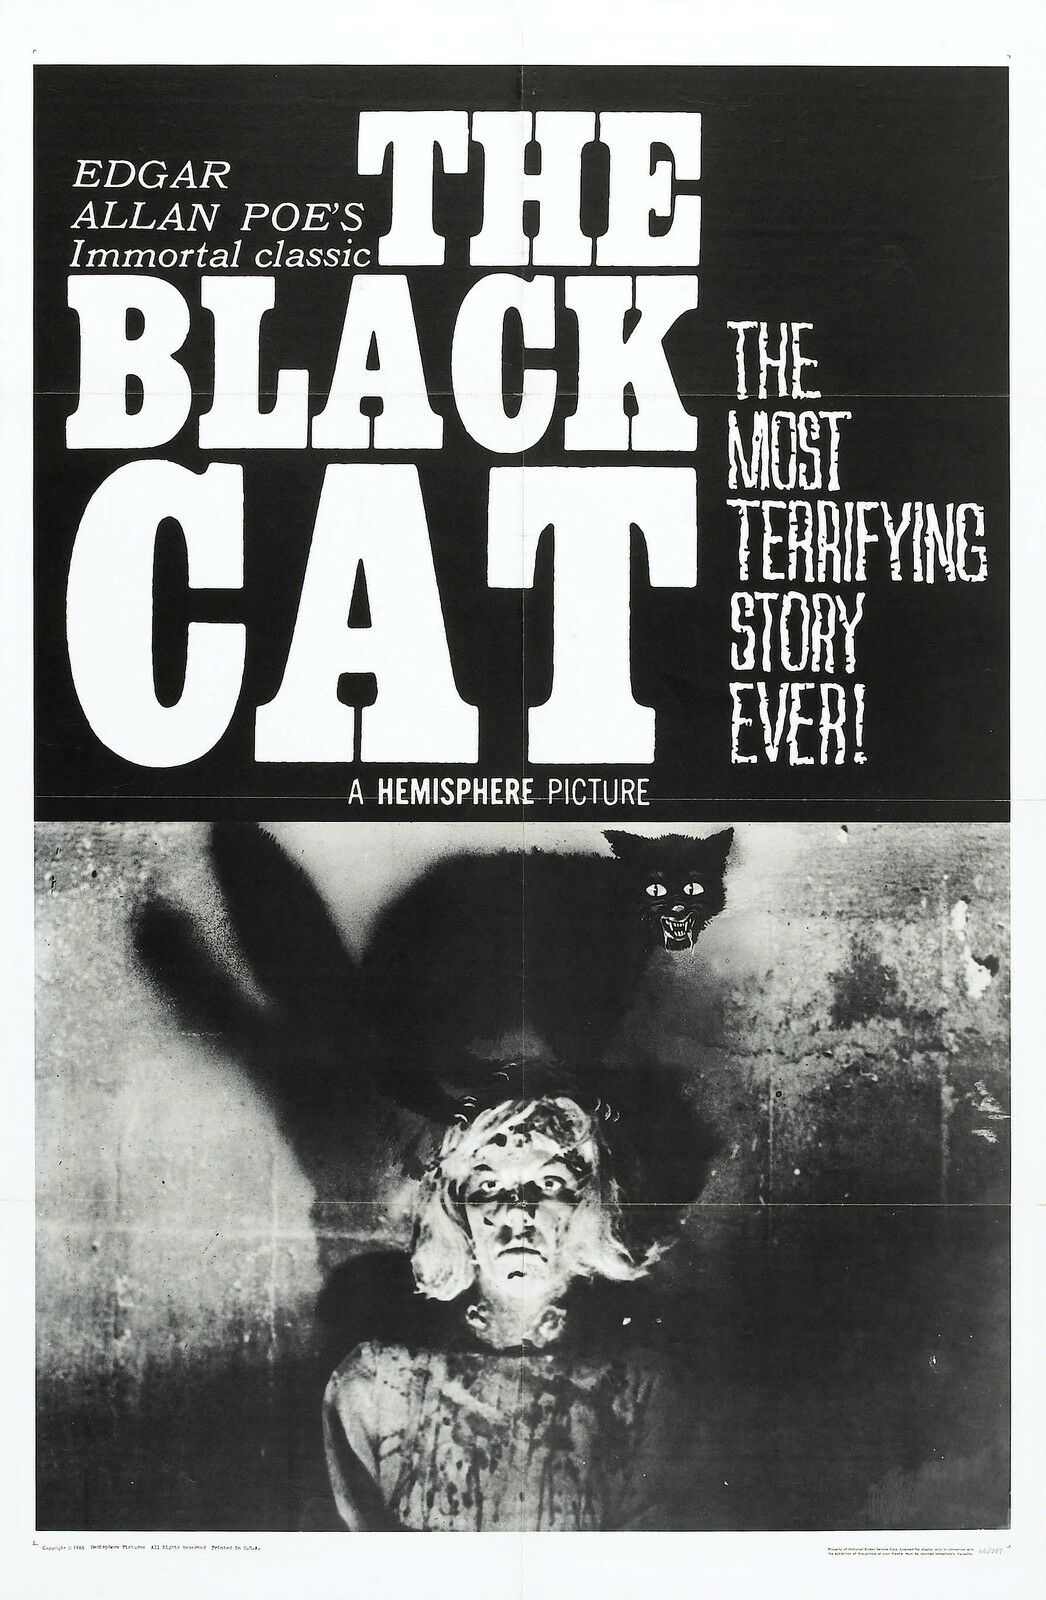 THE BLACK CAT Movie Poster 1966 Edgar Allan Poe Horror Classic | eBay